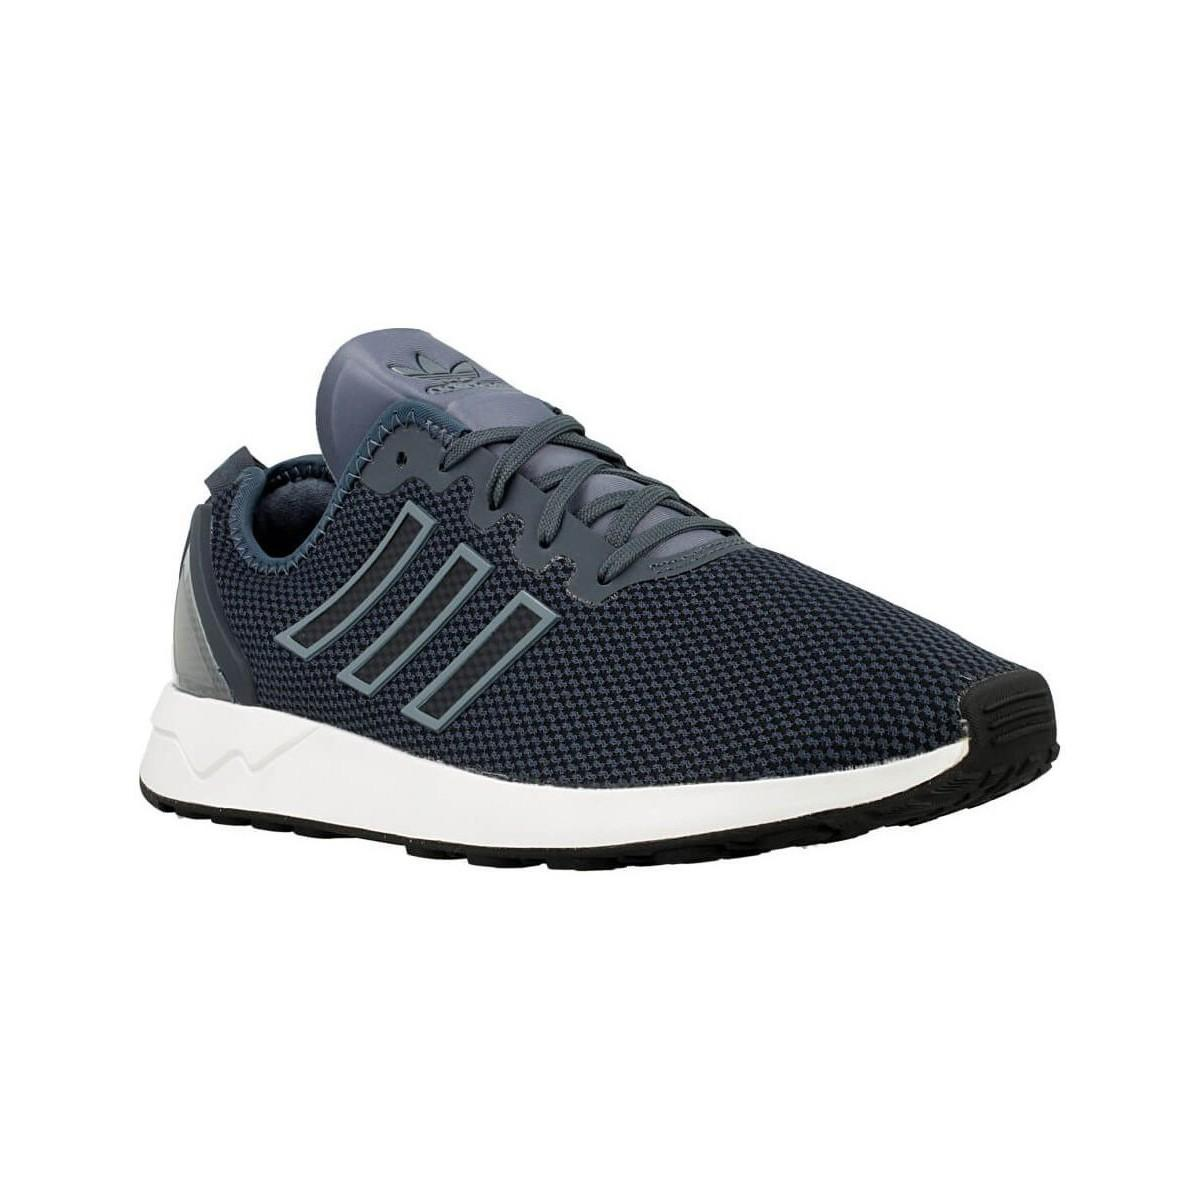 d940d73c7 adidas Zx Flux Adv Men s Shoes (trainers) In Multicolour in Blue for ...